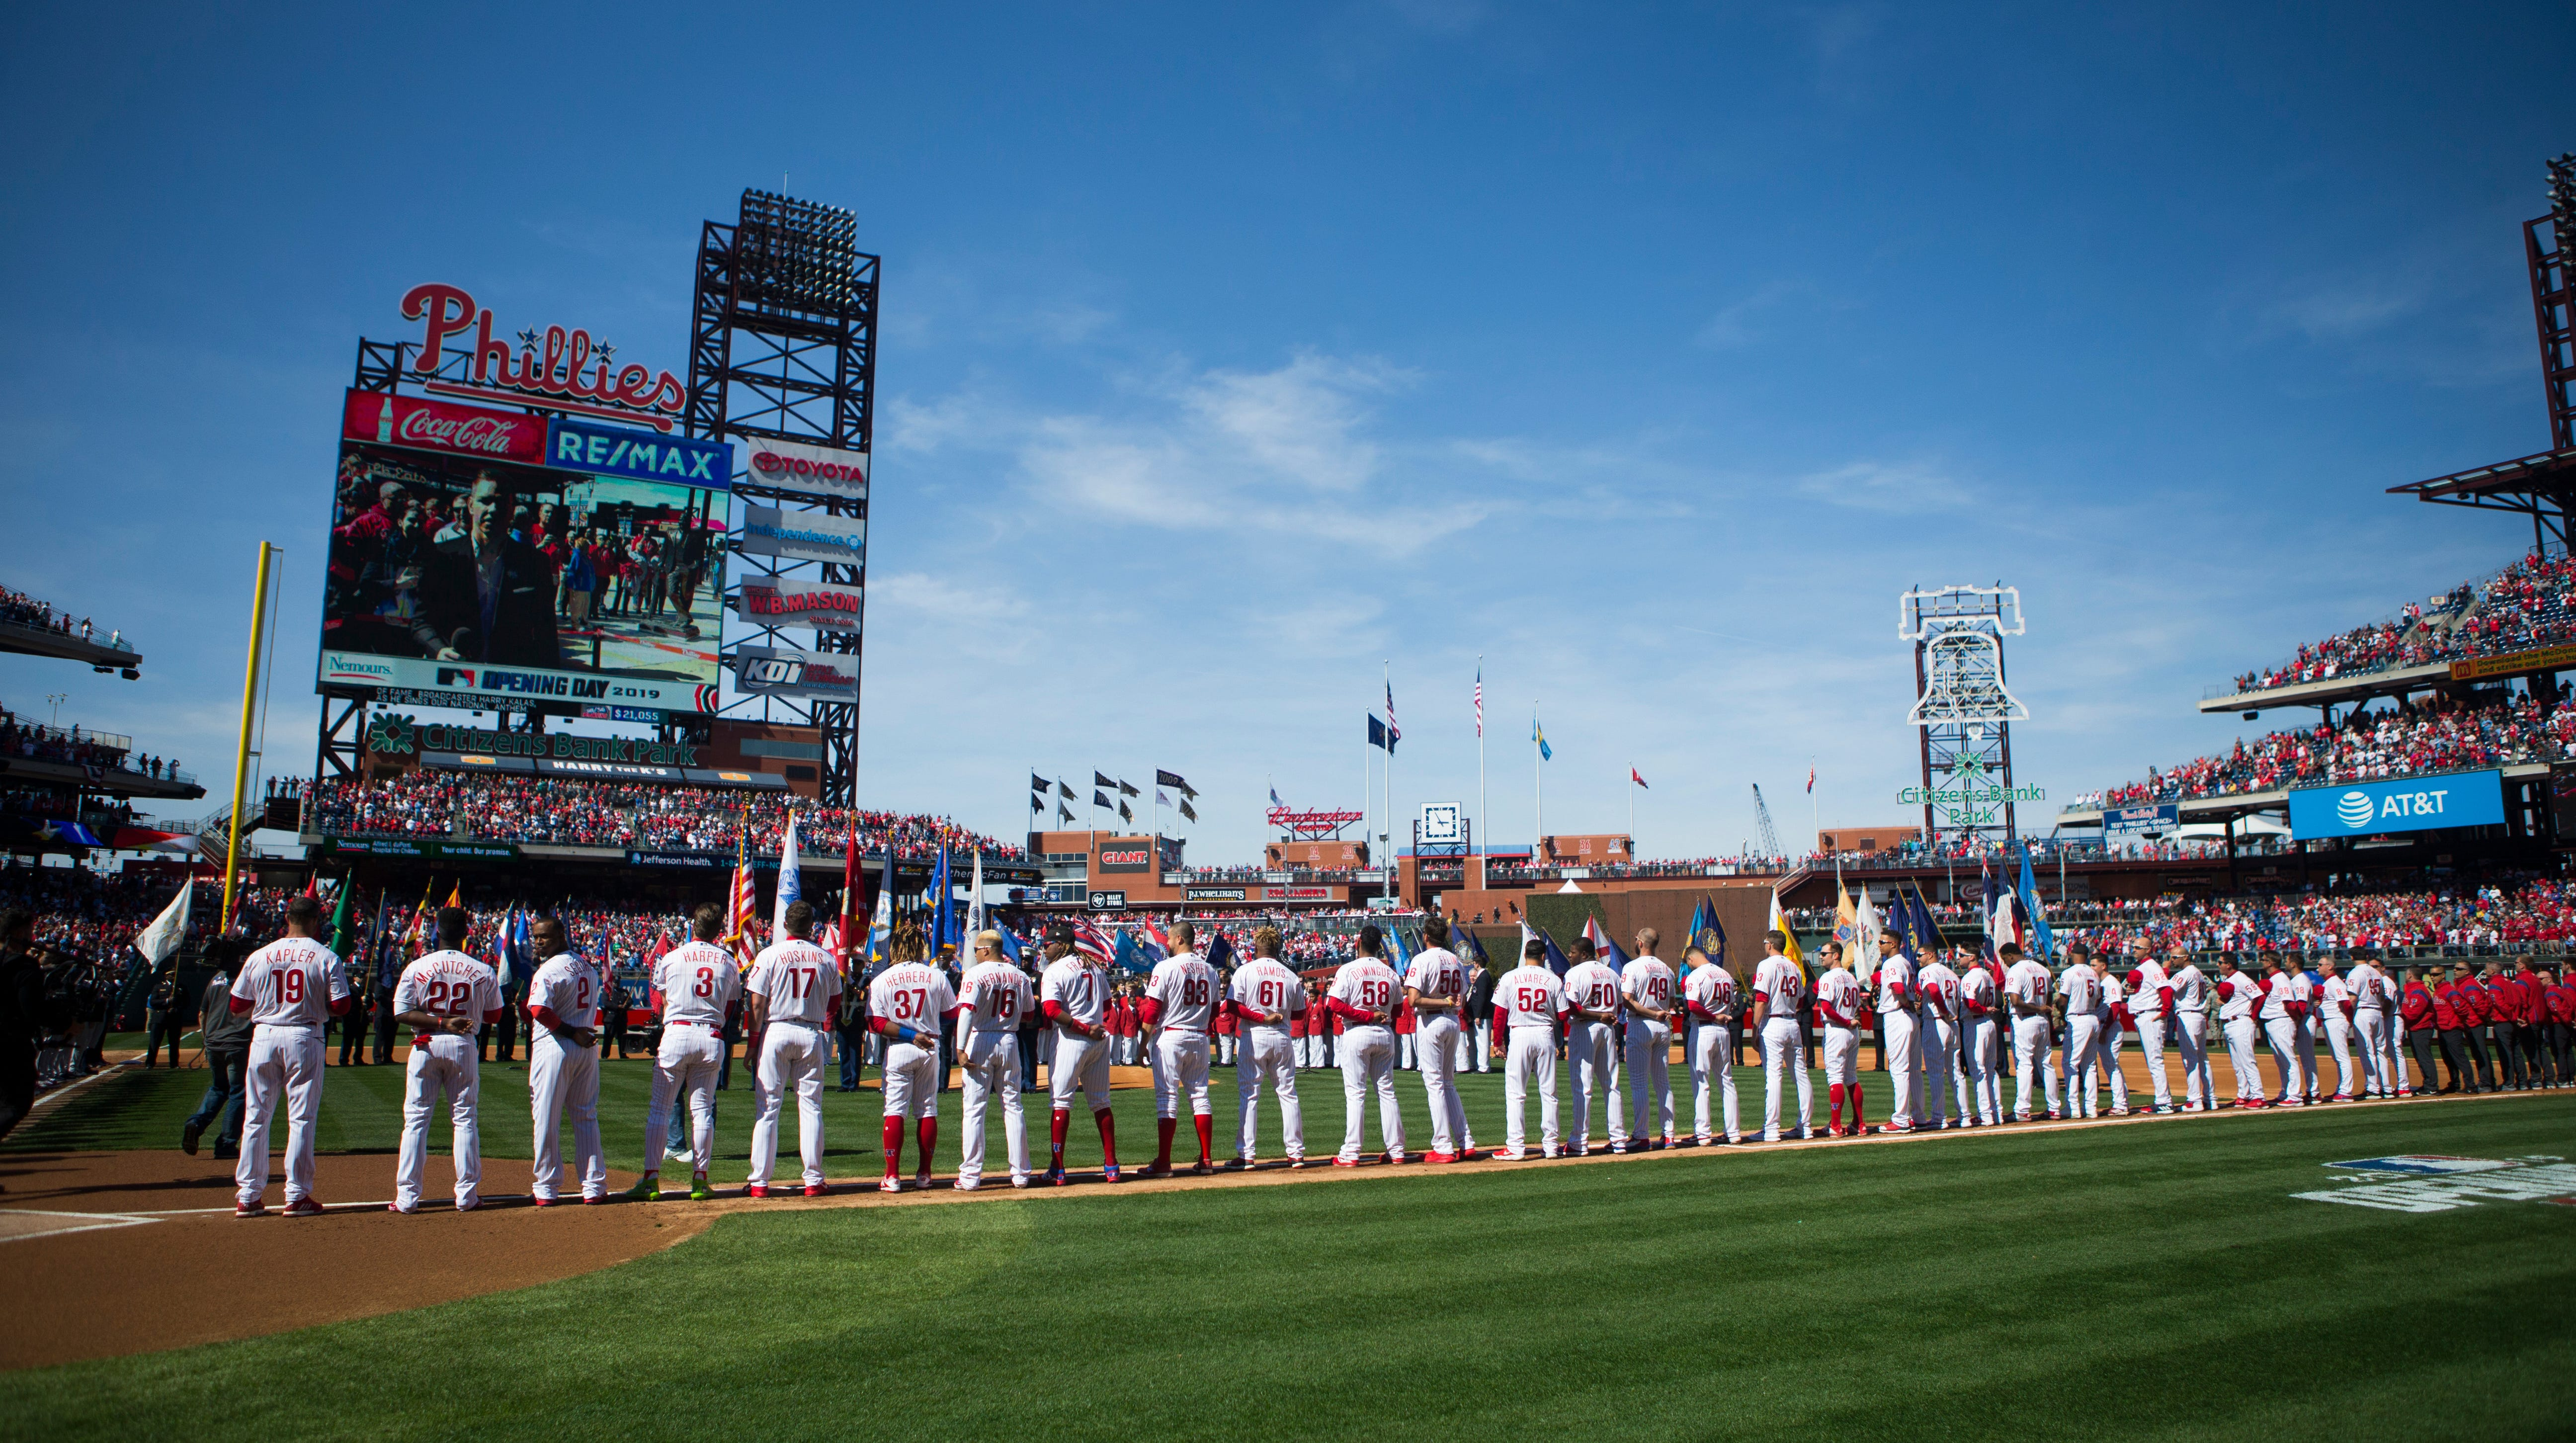 It's like the good old days again for Phillies, fans on Opening Day